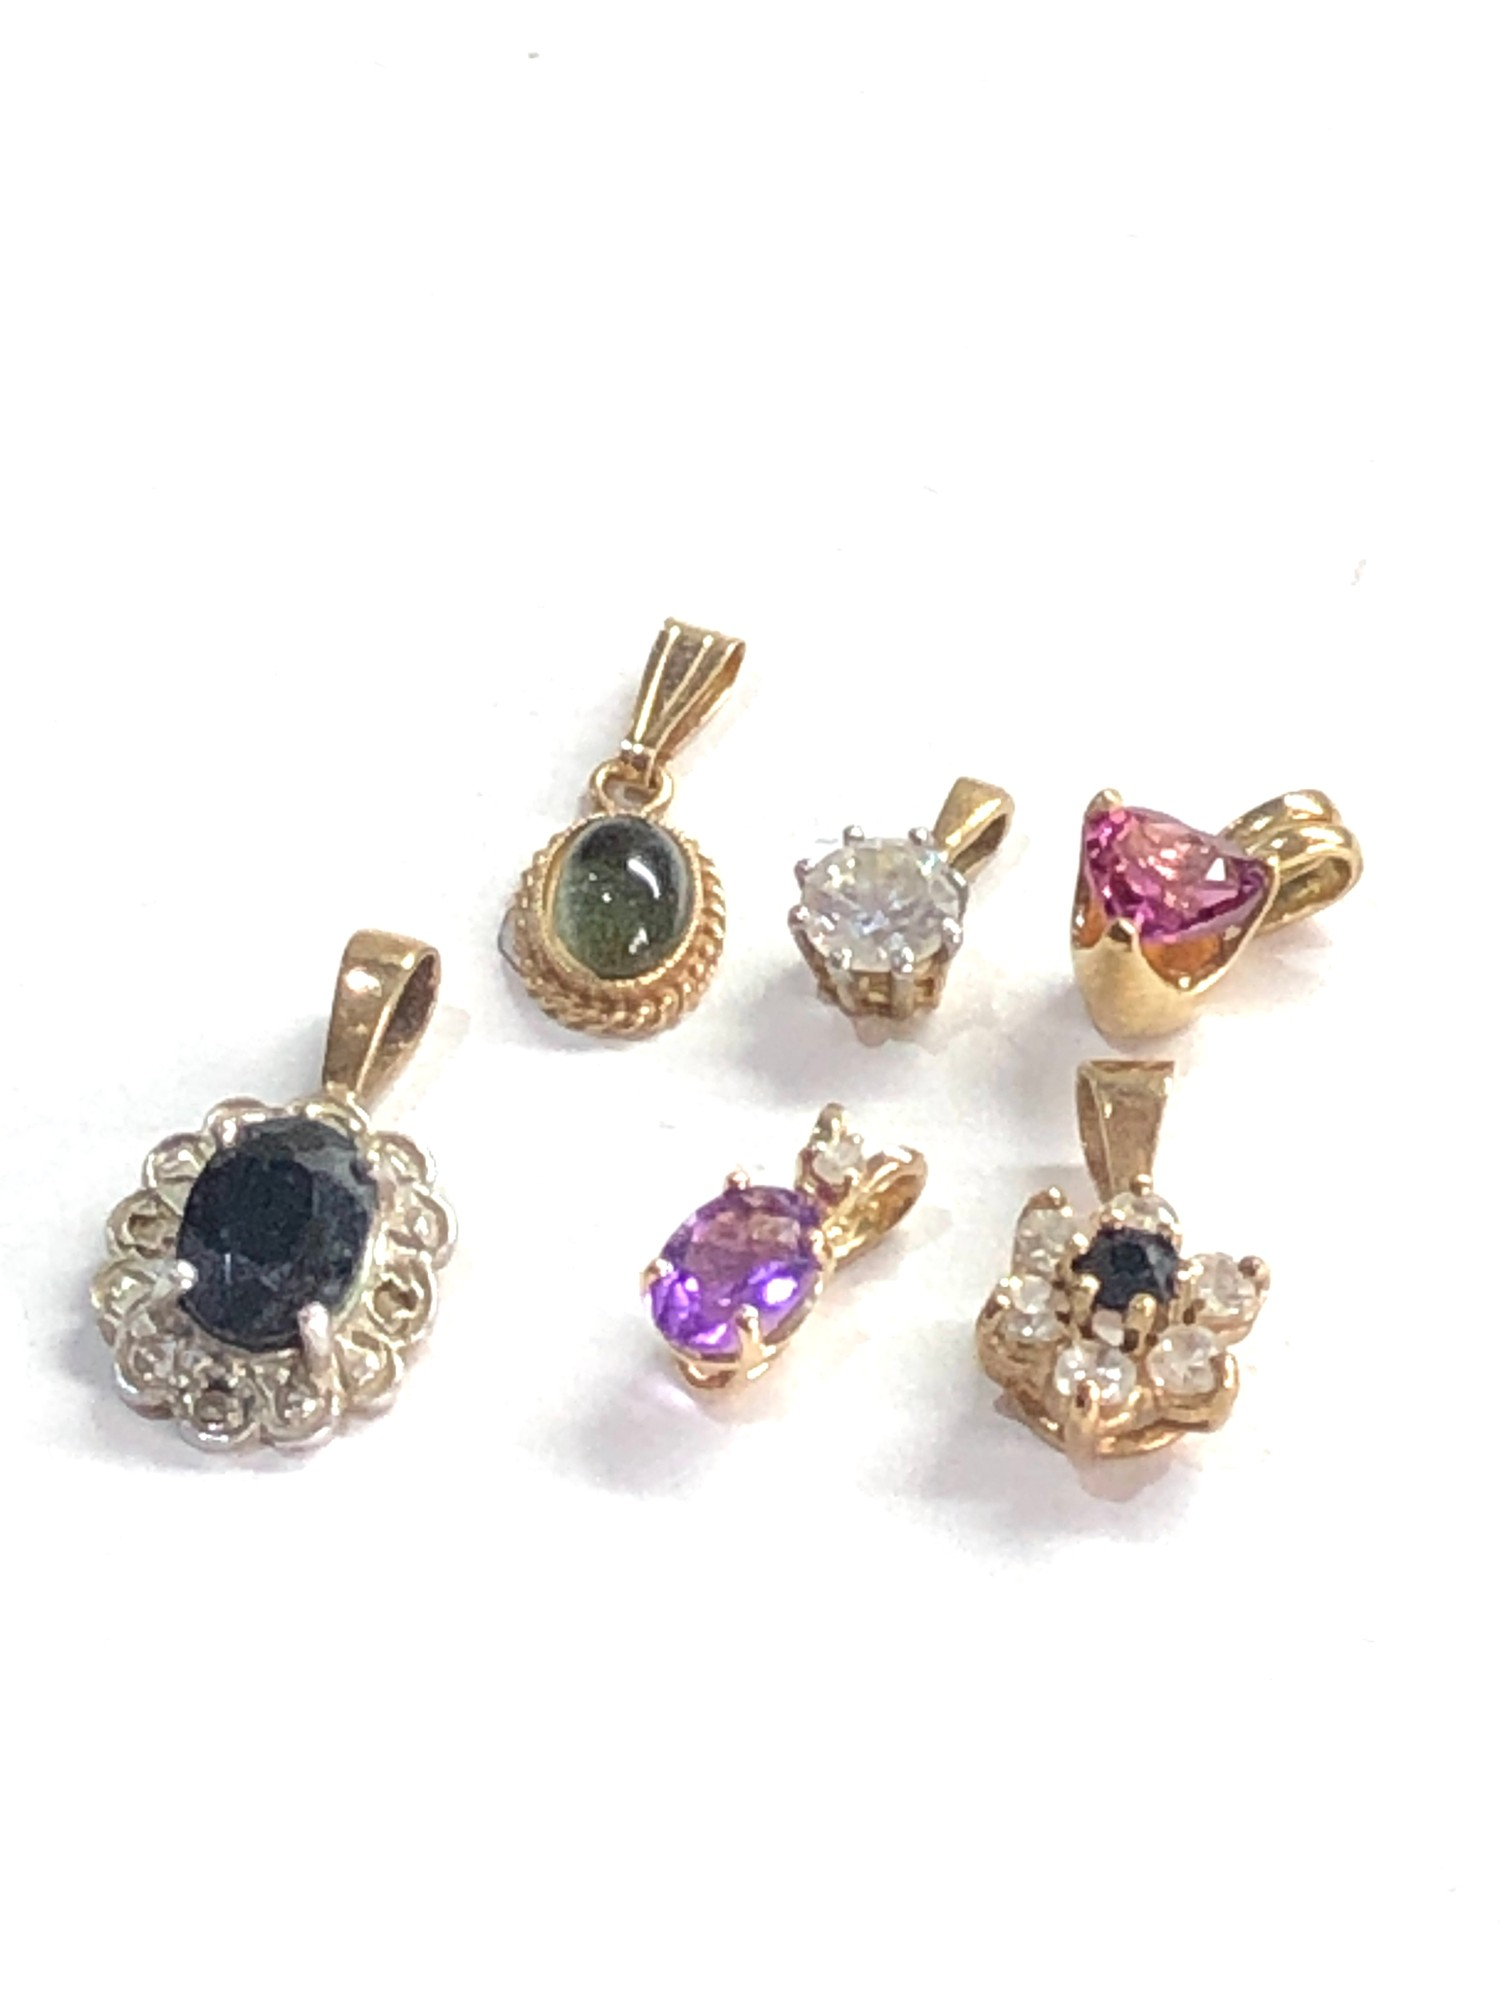 6 small 9ct gold pendants 3.3g - Image 2 of 2